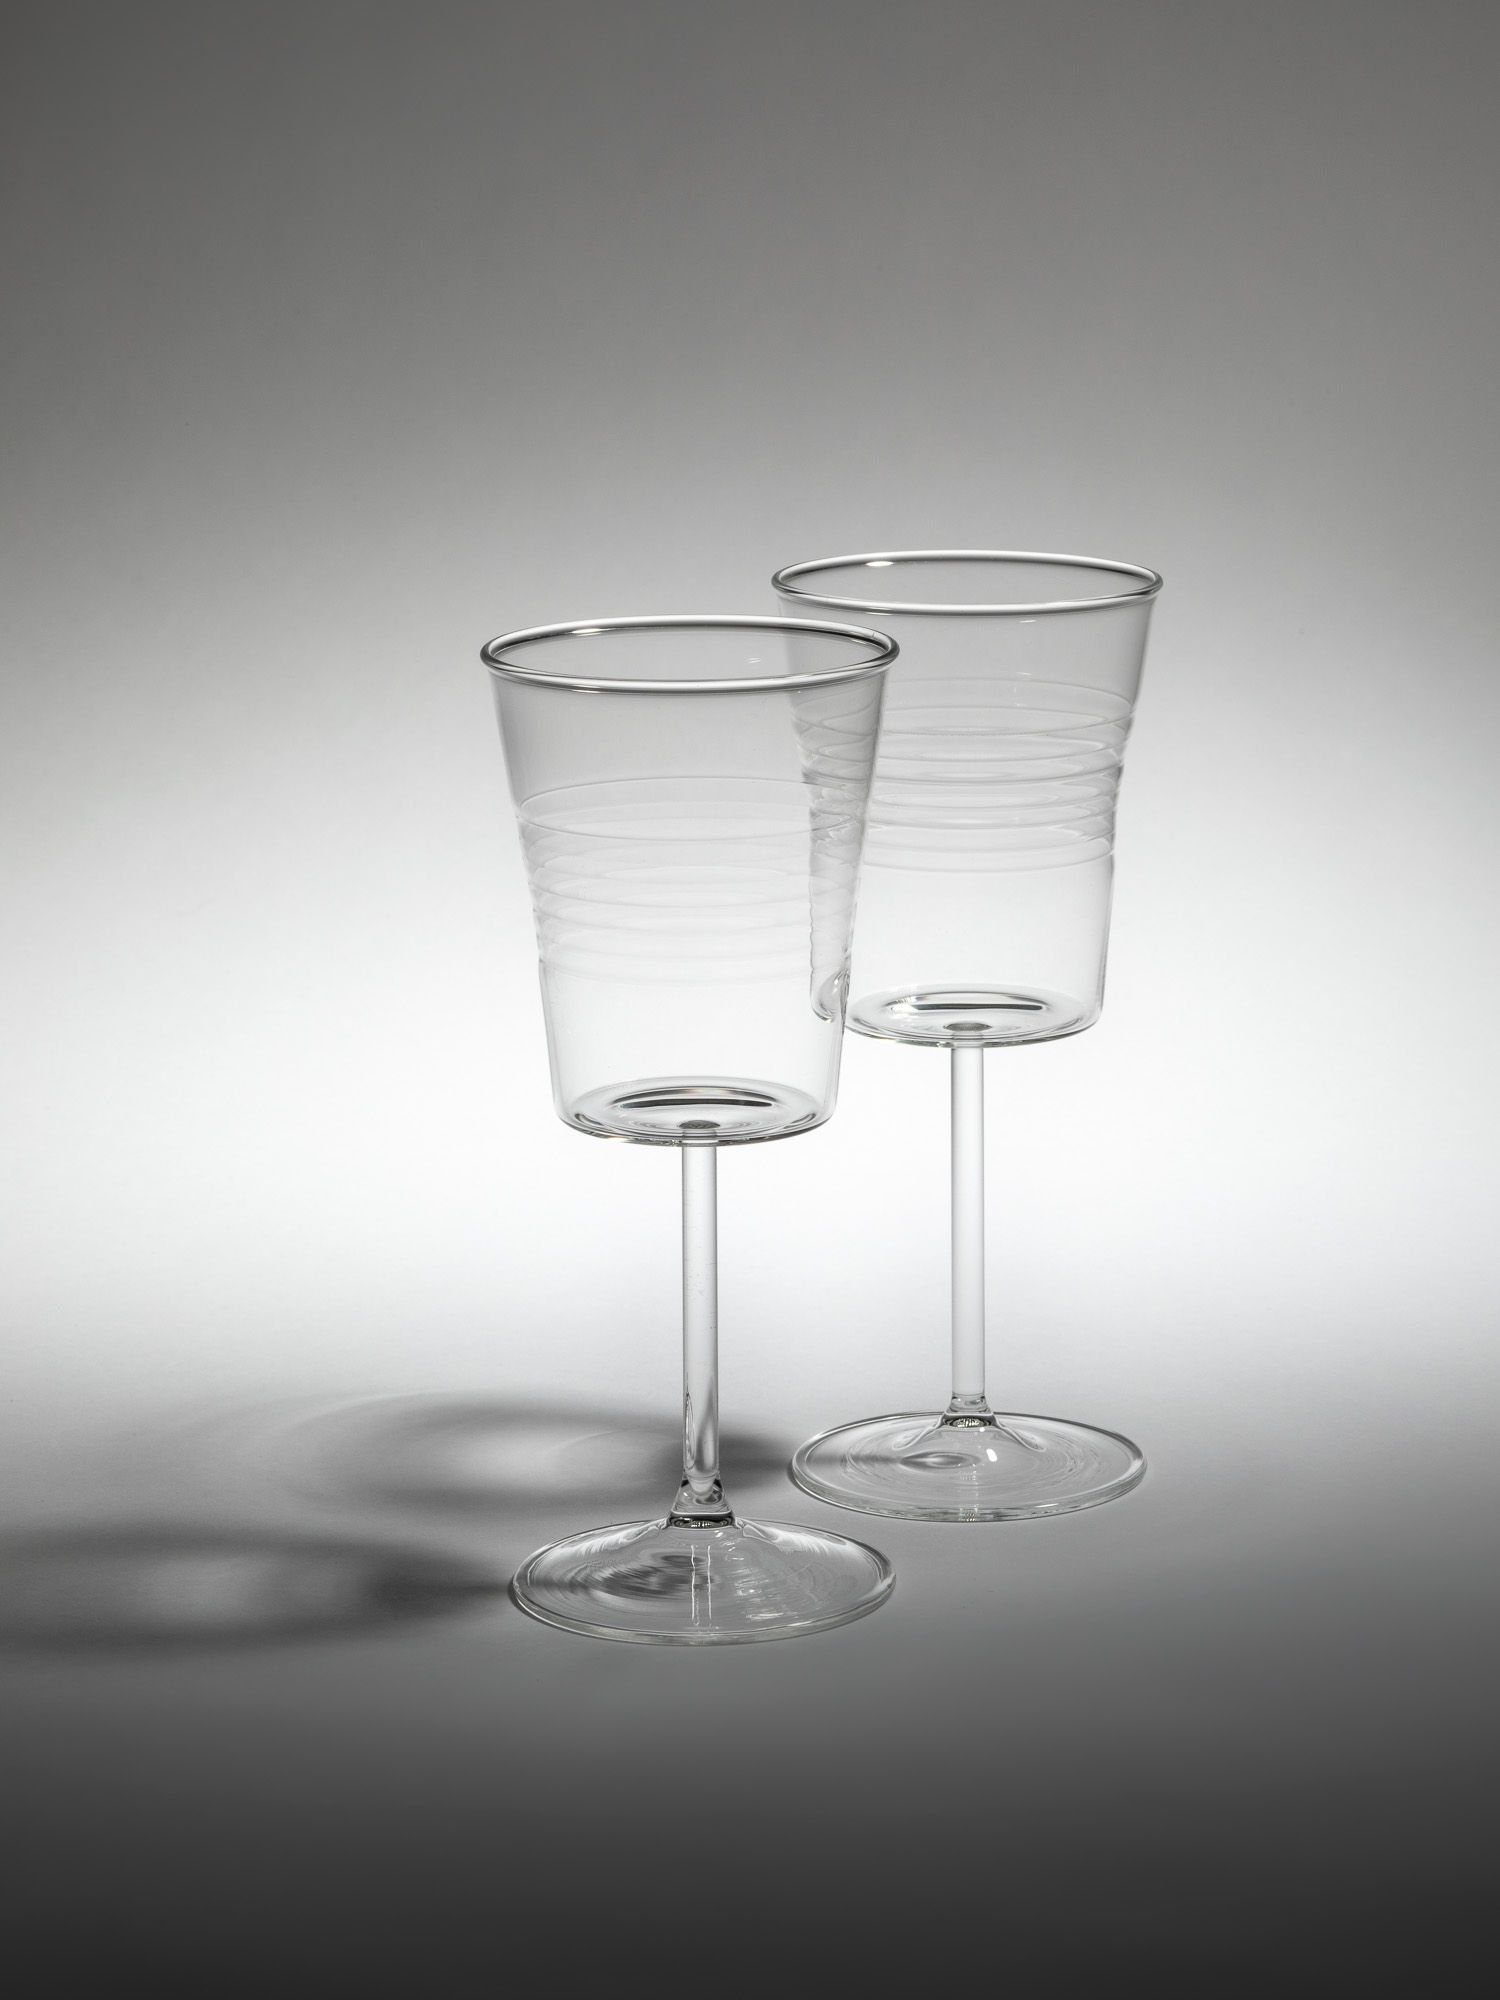 Two transparent glass wine glasses by Qubus